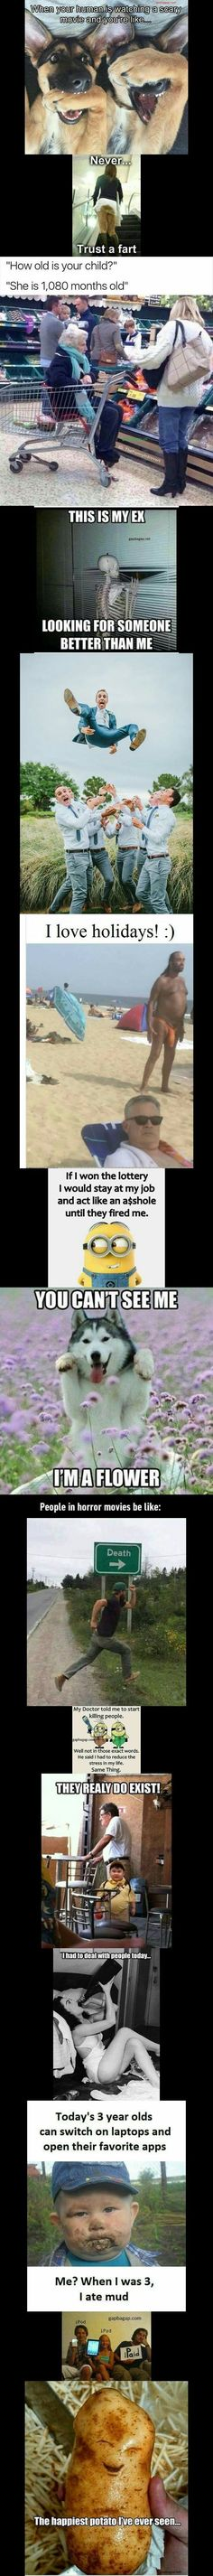 Top 15 #Funny #Memes and #Pictures